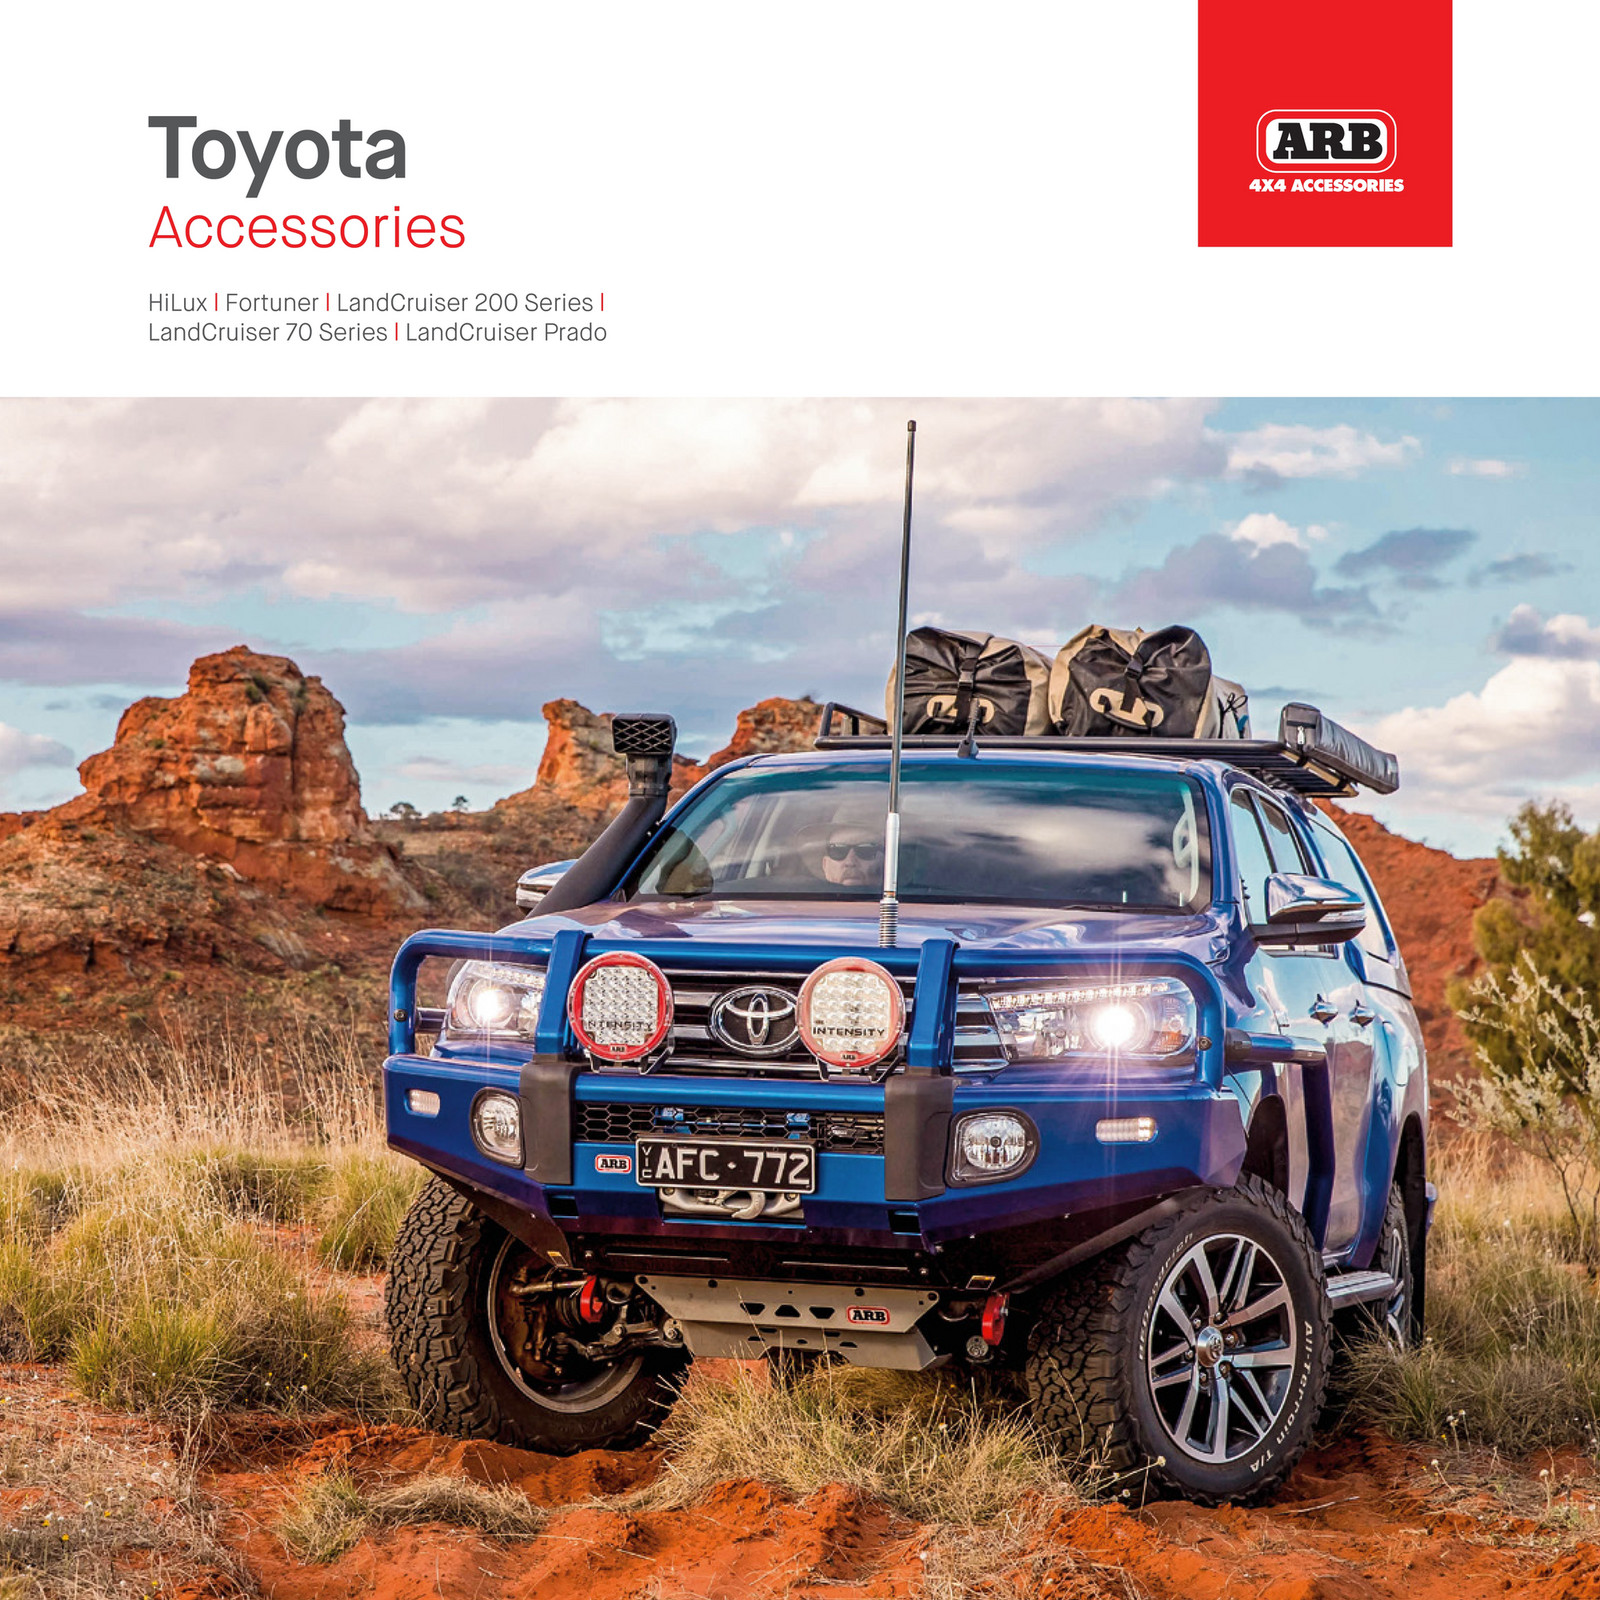 Arb 4x4 Accessories Toyota Dealer Booklet Page 18 19 Land Cruiser